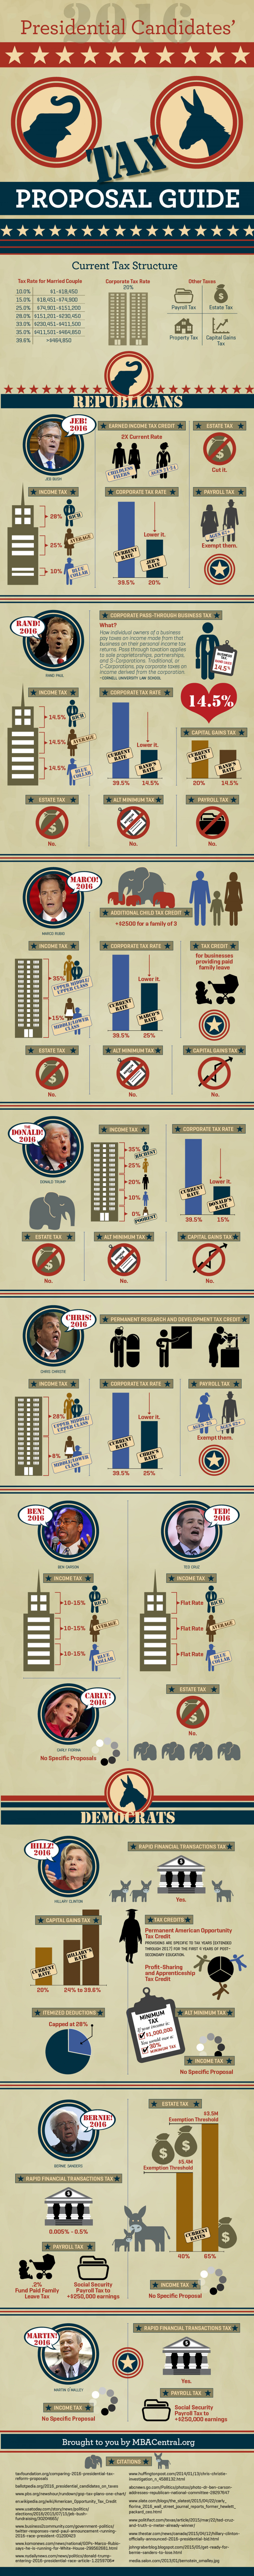 2016 Presidential Candidates' Tax Plan Guide Infographic